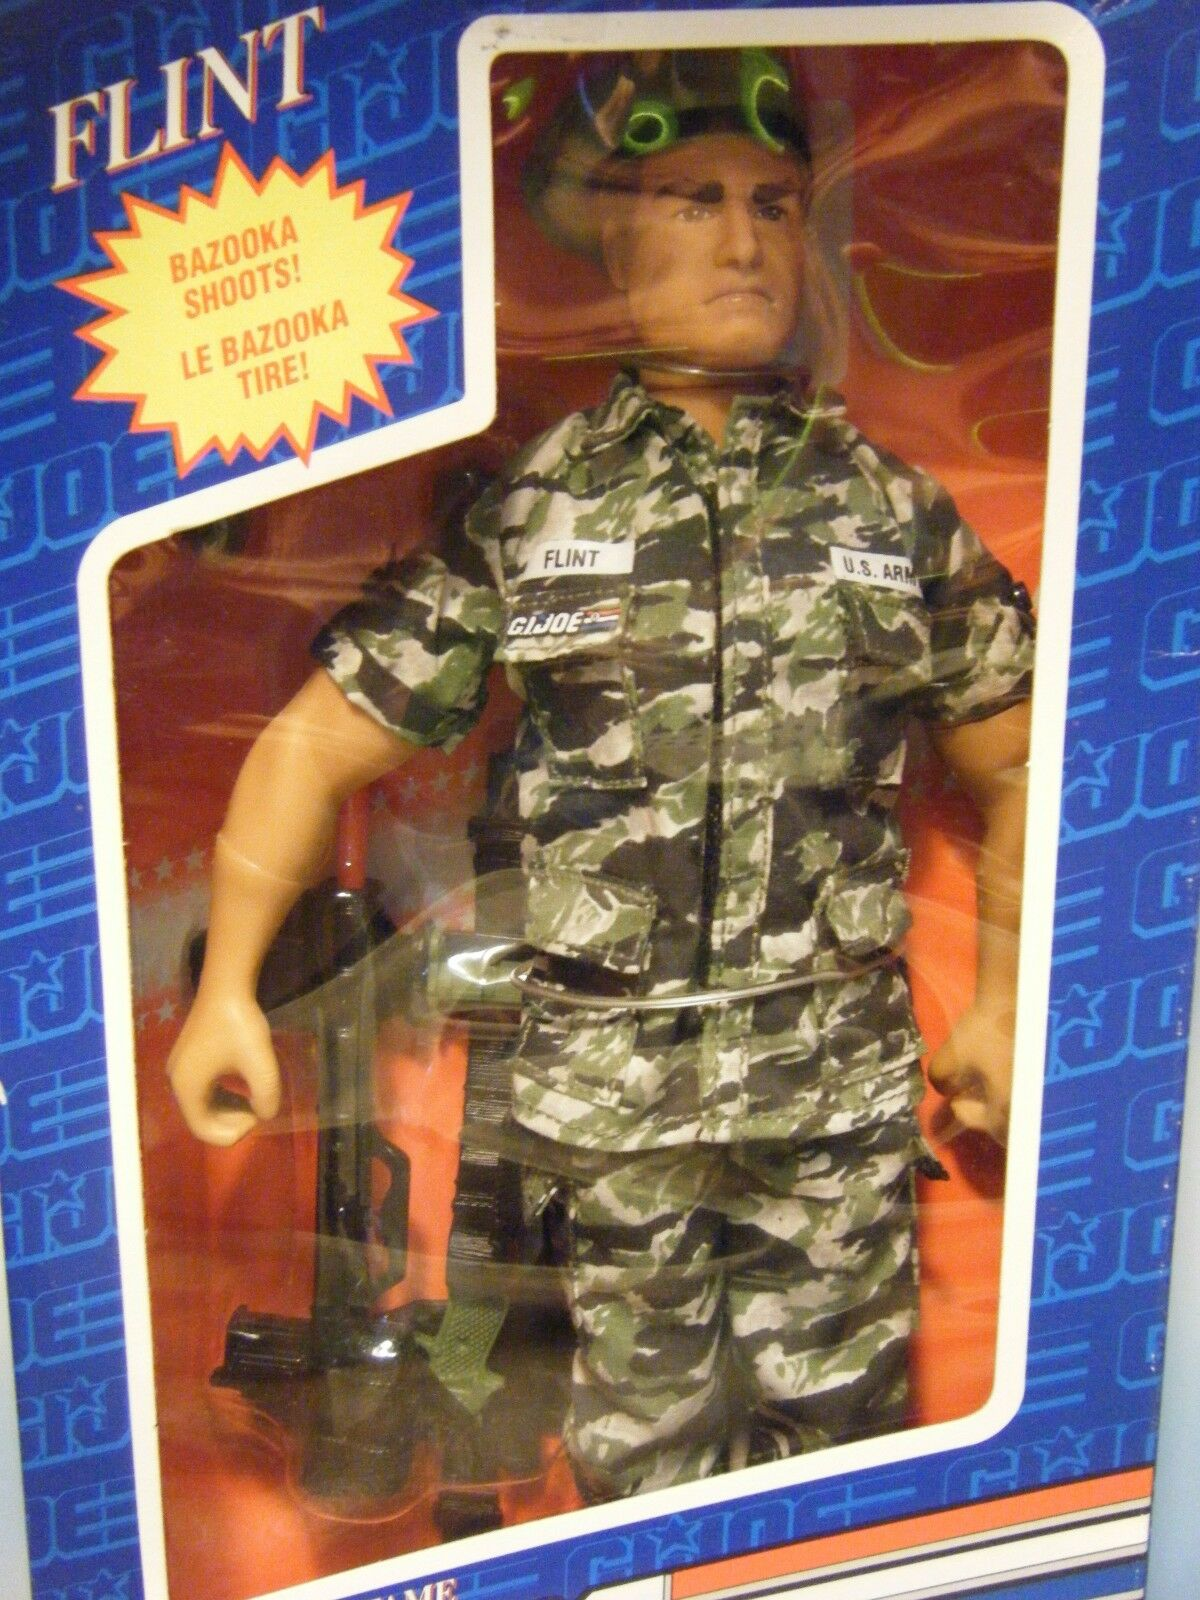 Gi Joe Hall of Fame Flint 12  Figura De Acción Caja Variante de idioma